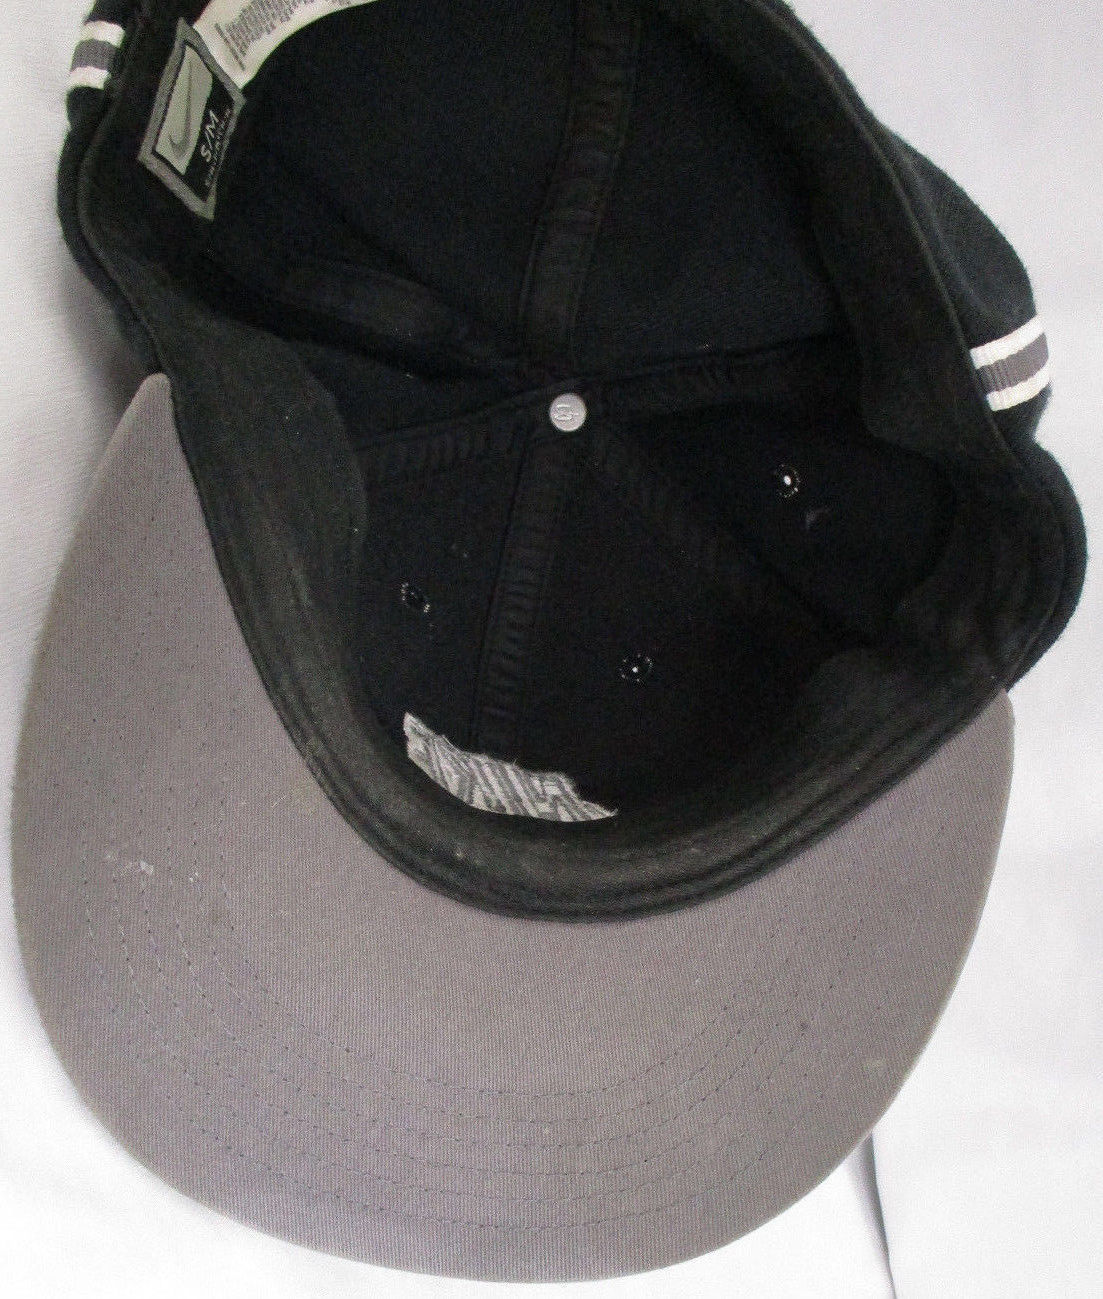 9bcc029903ba1 free shipping vtg hat cap stretch fit nike black old school classic rare  56323 sz s